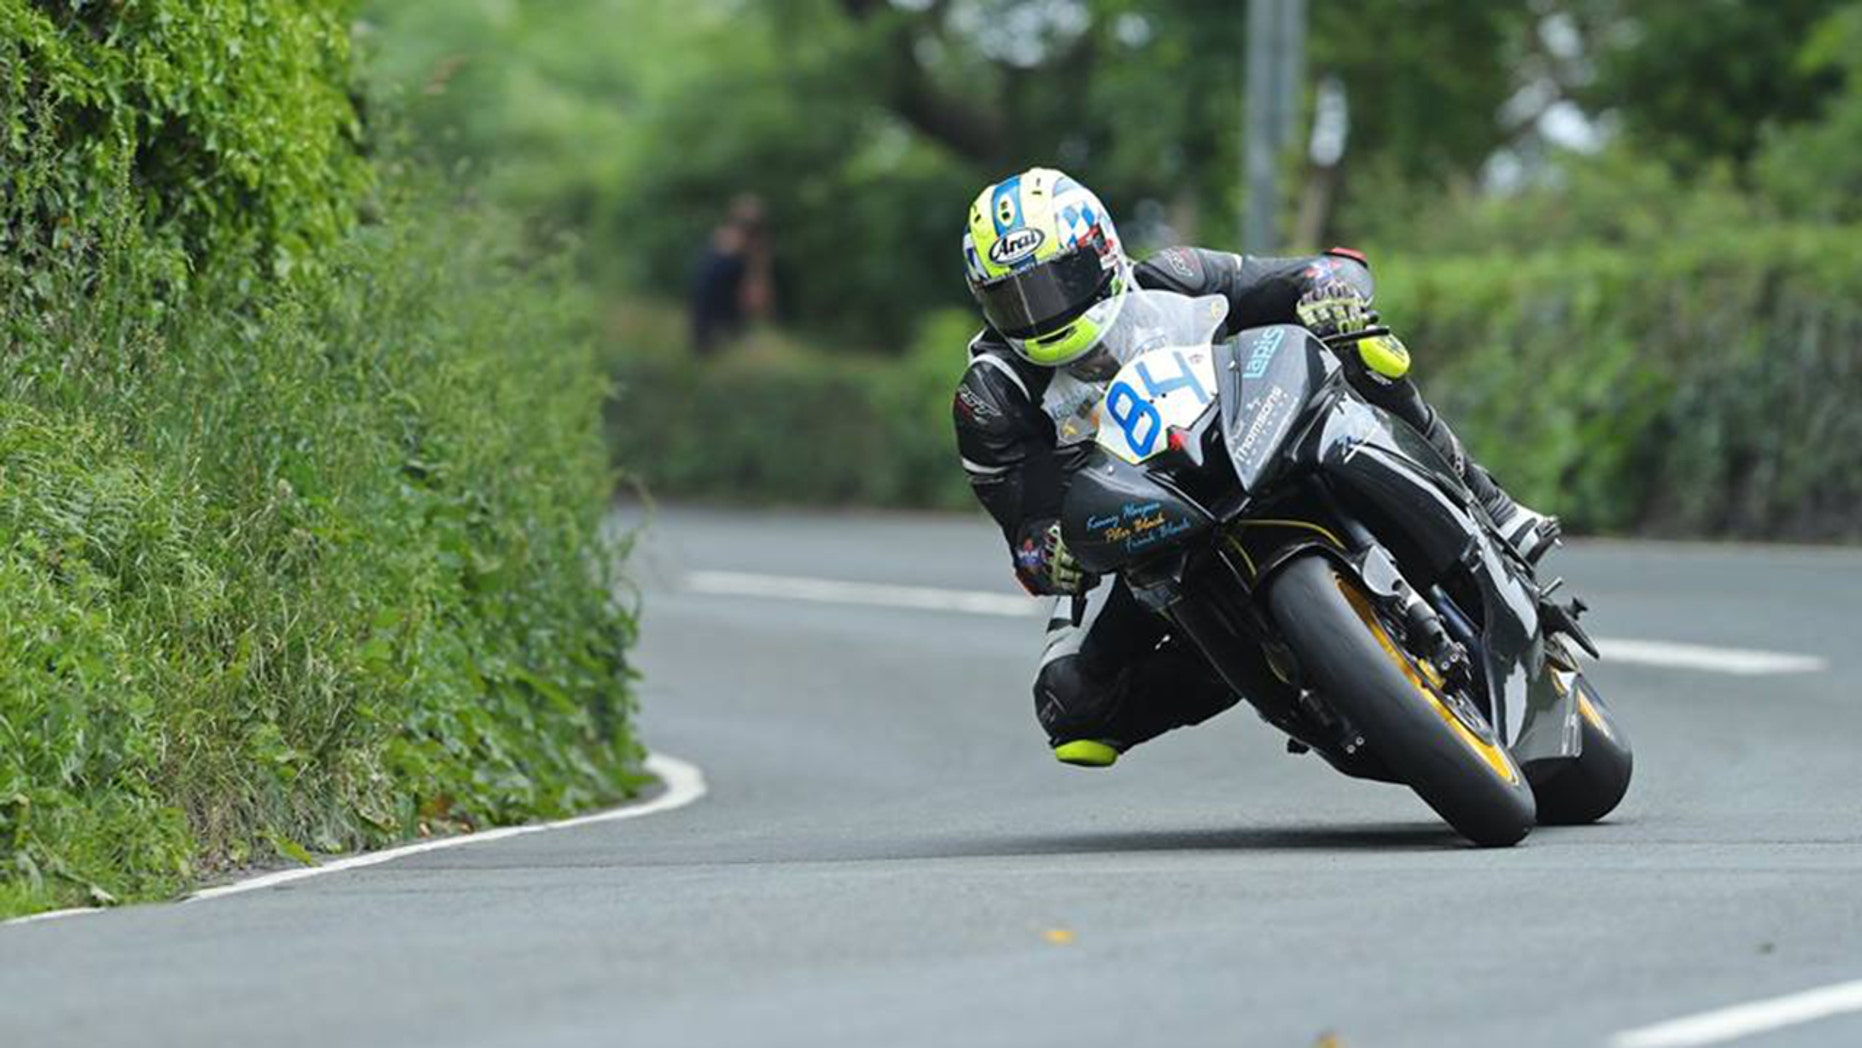 Adam Lyon was competing in his first Isle of Man TT when he suffered a fatal crash.